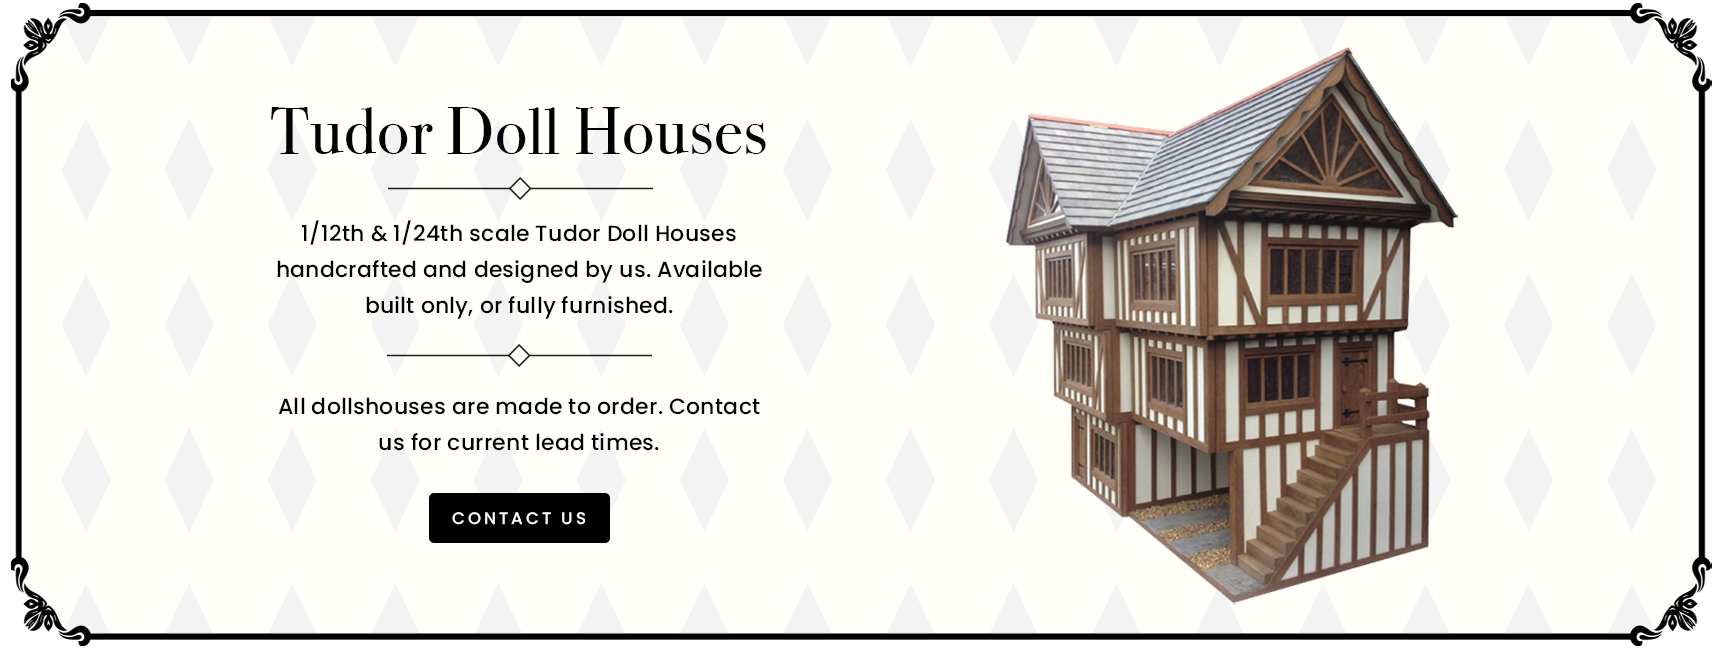 Tudor Doll Houses